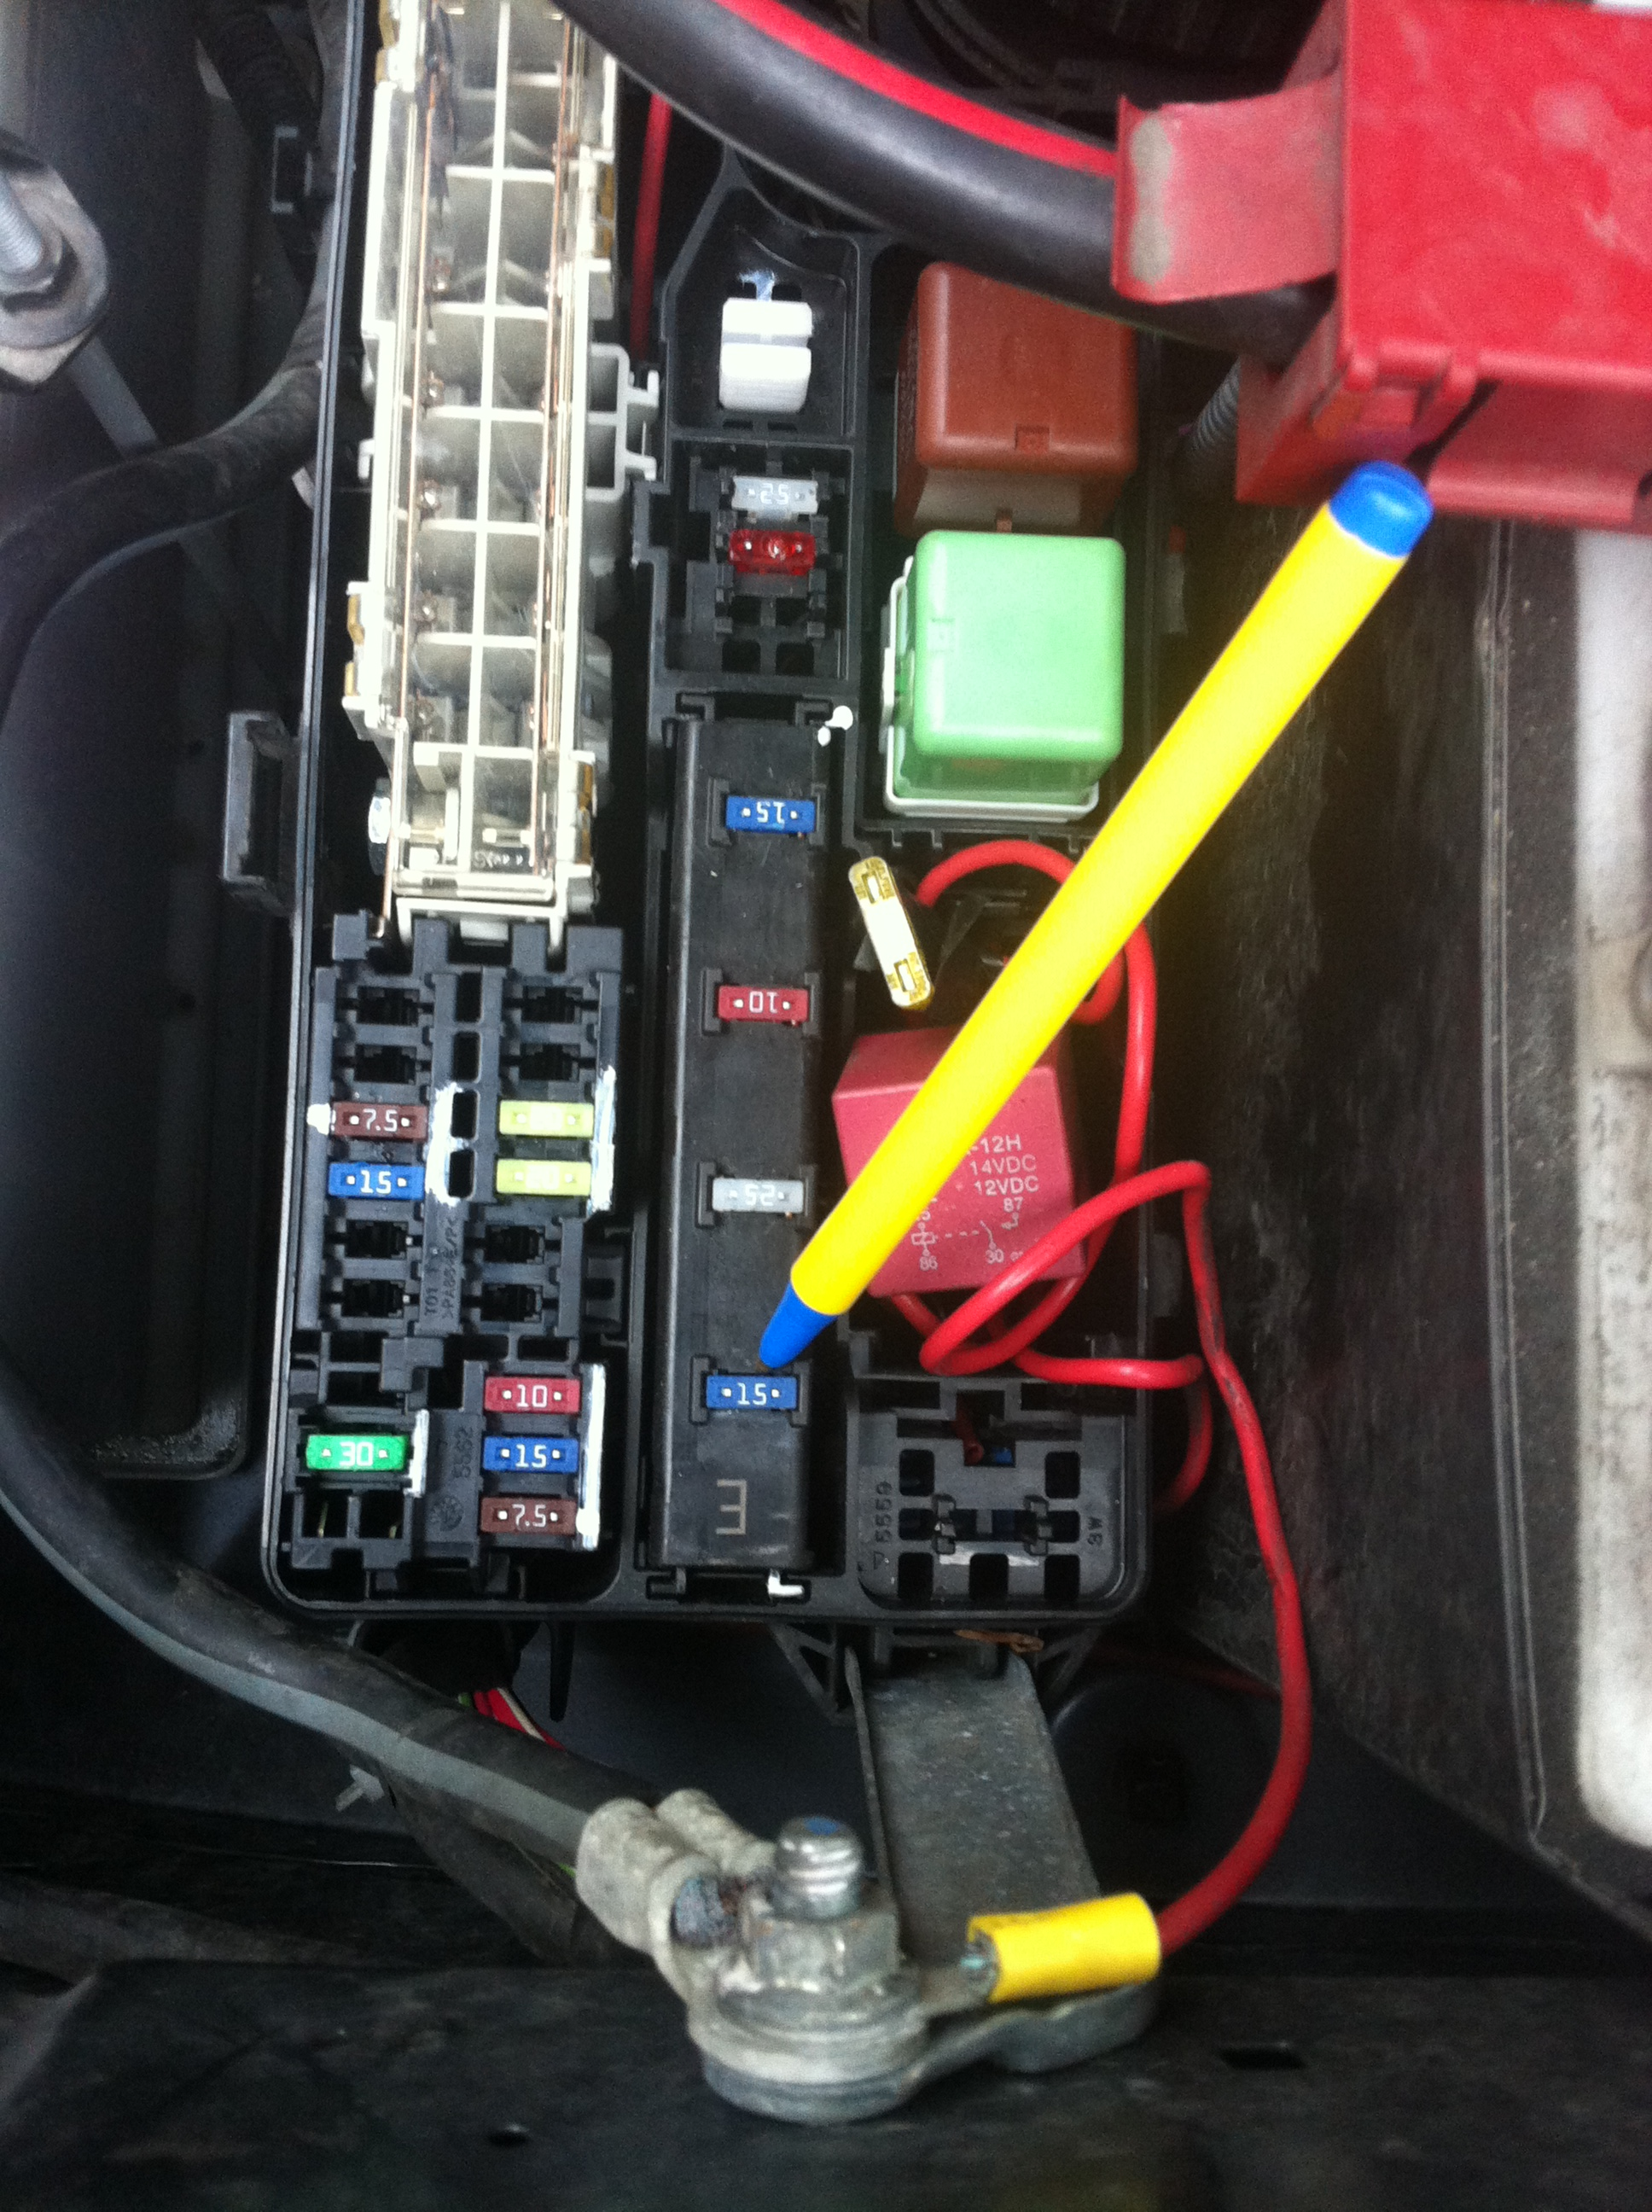 1988 Toyota Camry Fuse Box Diagram Wiring Library 2008 1990 Pickup Truck Electrical Work 2012 Location